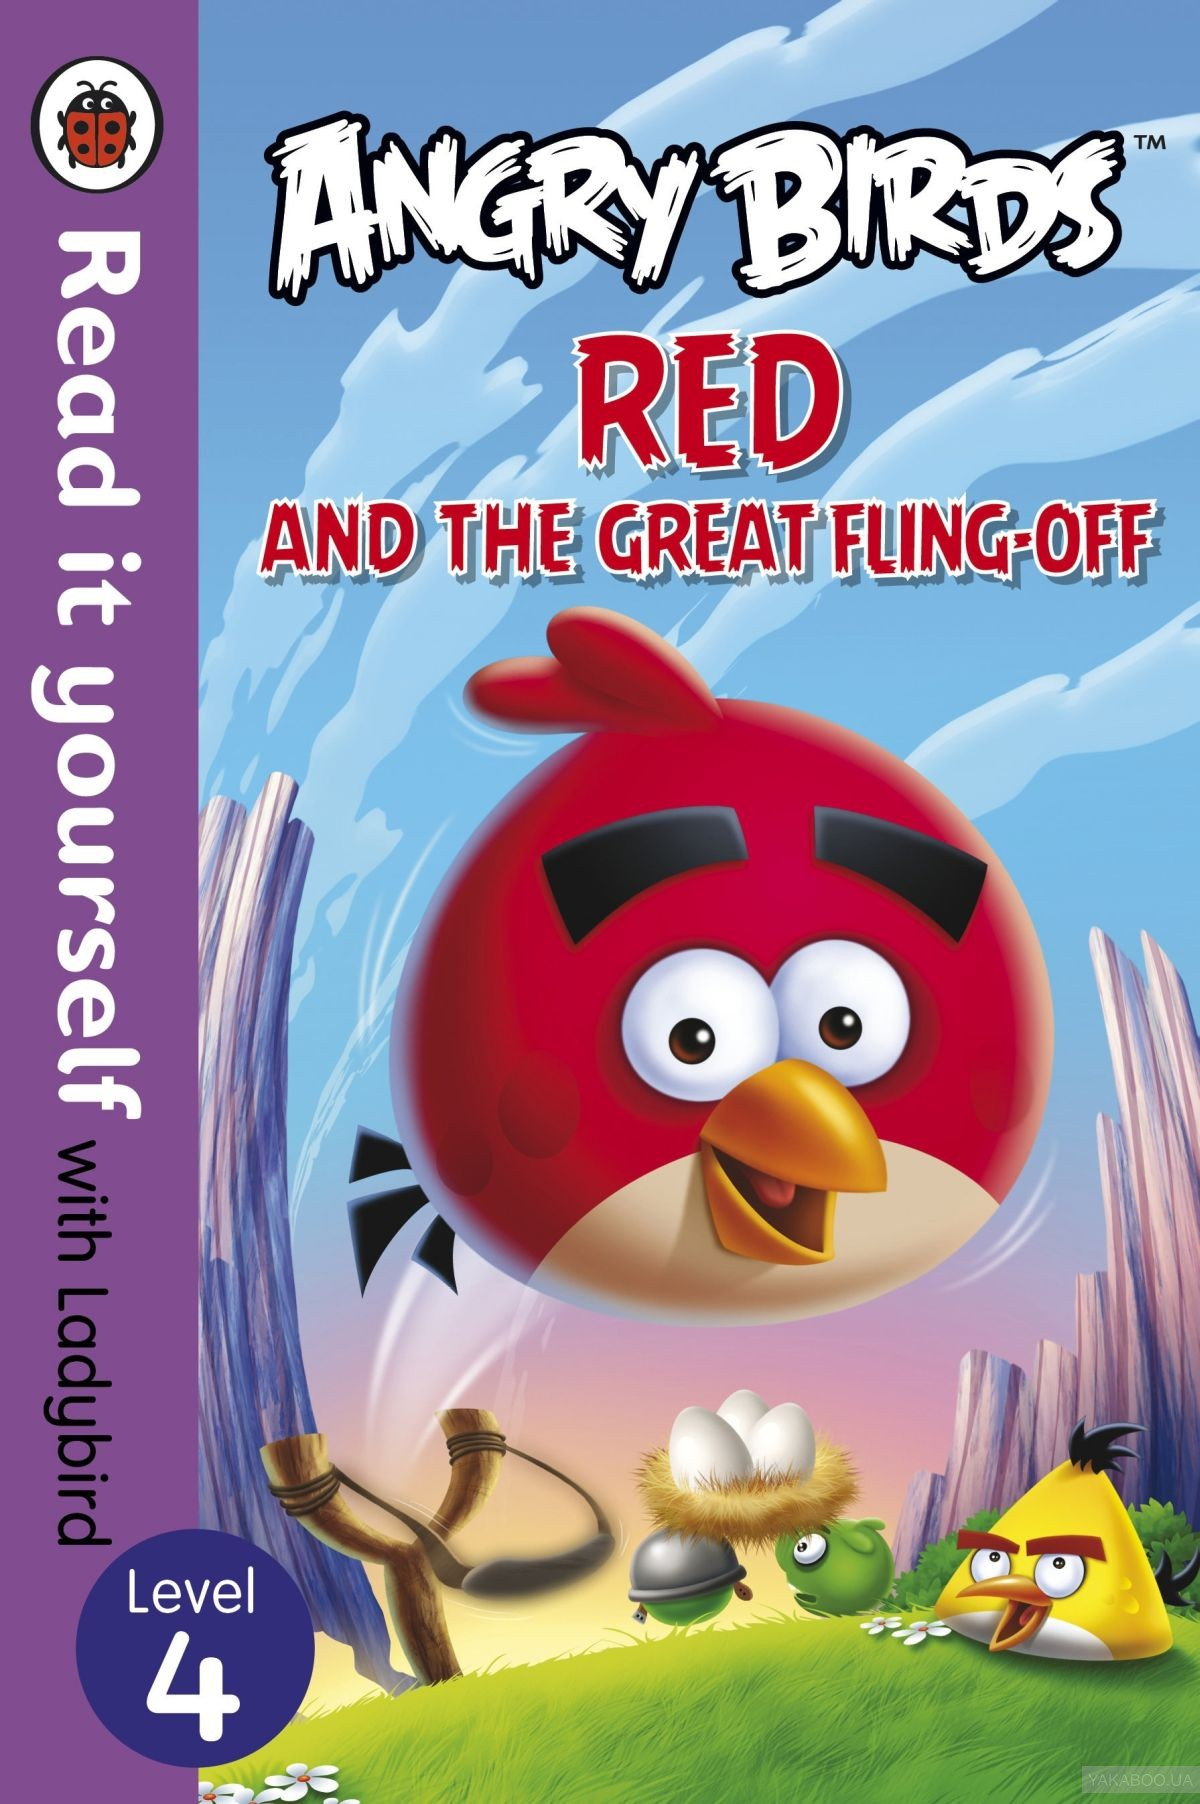 Angry Birds. Red and the Great Fling-off